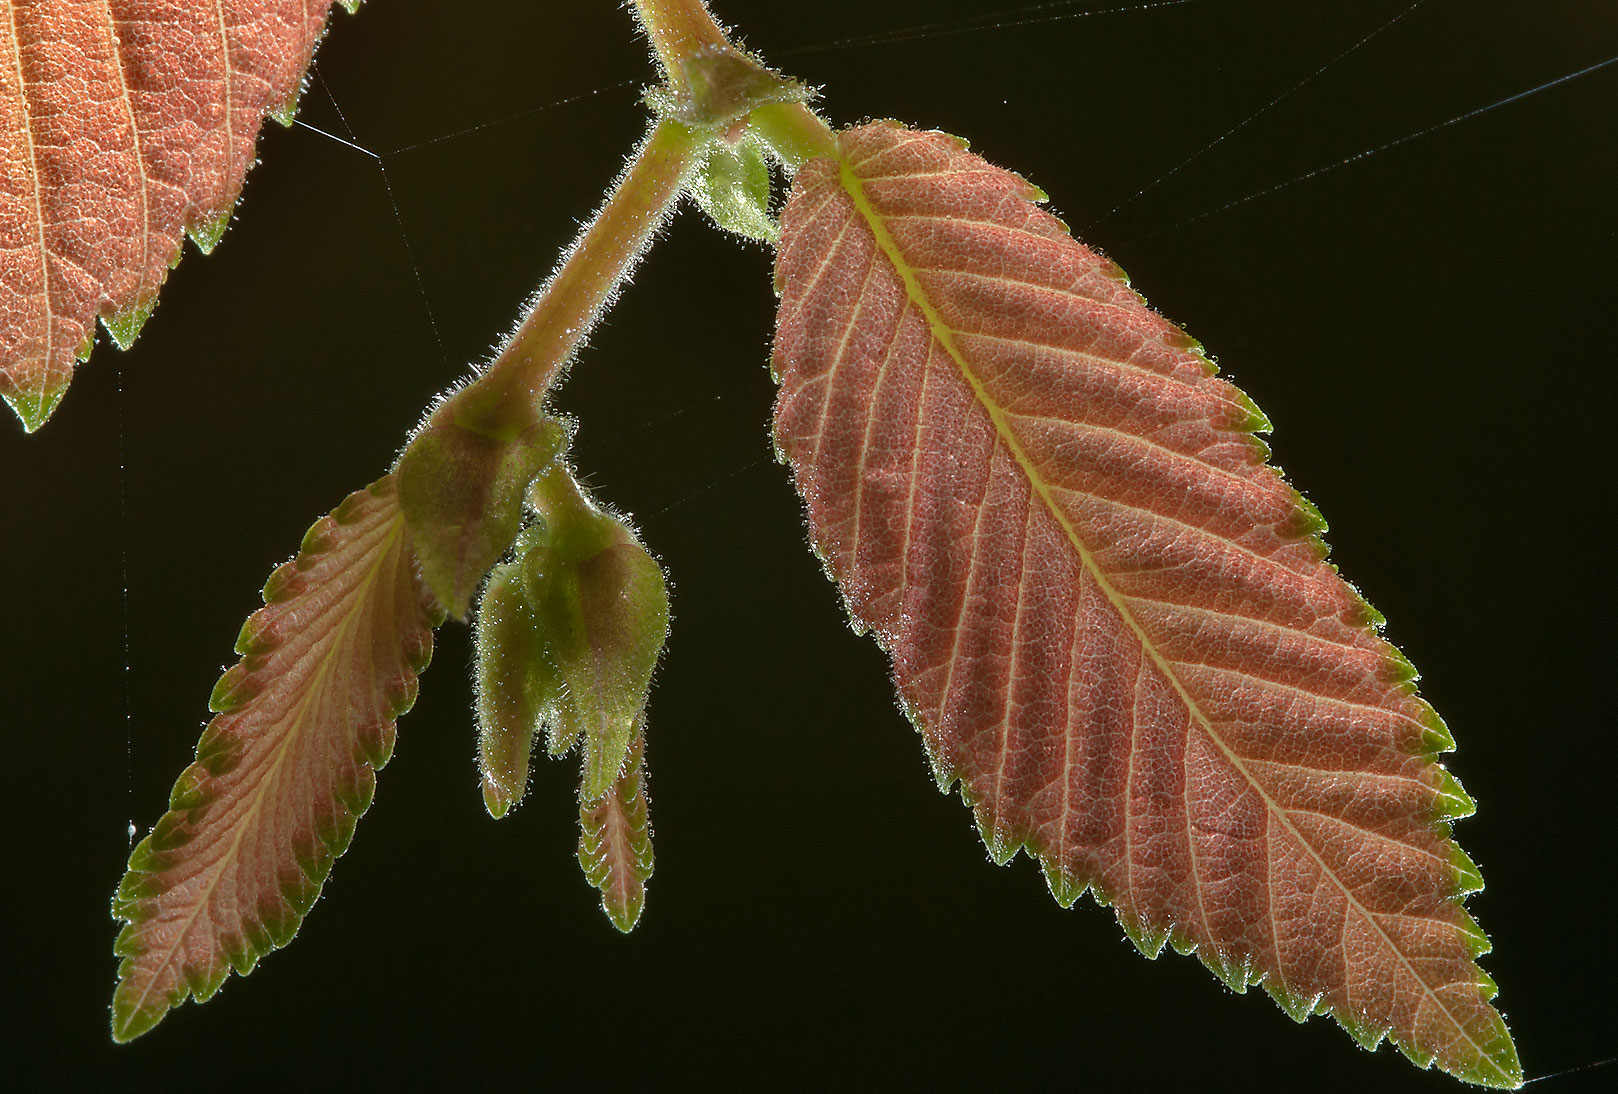 Leaves of elm in Lick Creek Park. College Station, Texas